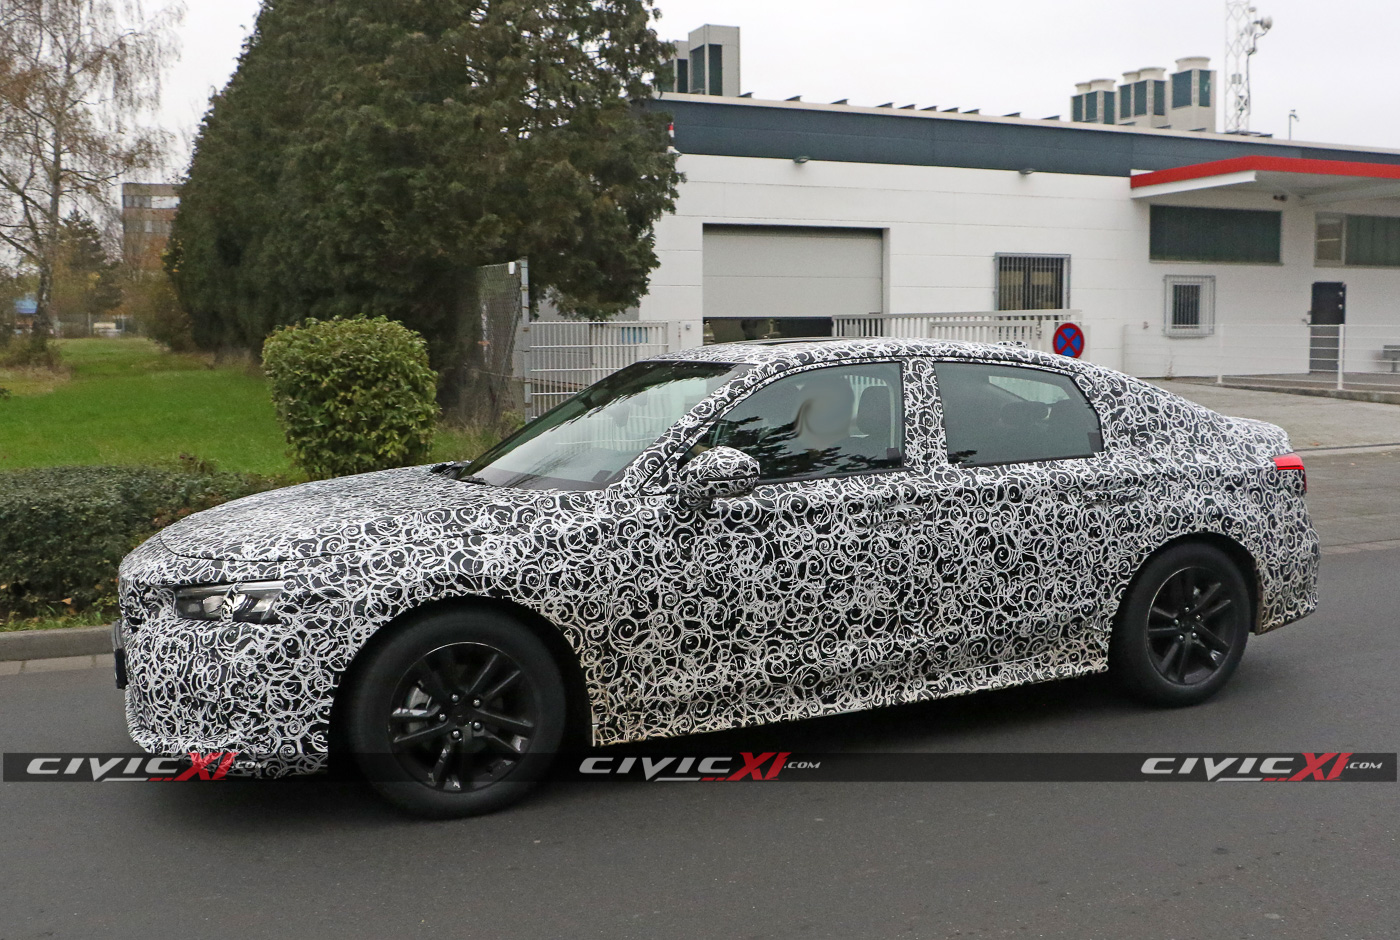 2022-Civic-Sedan-11th-Generation-Spied-Testing-Germany-9.jpg